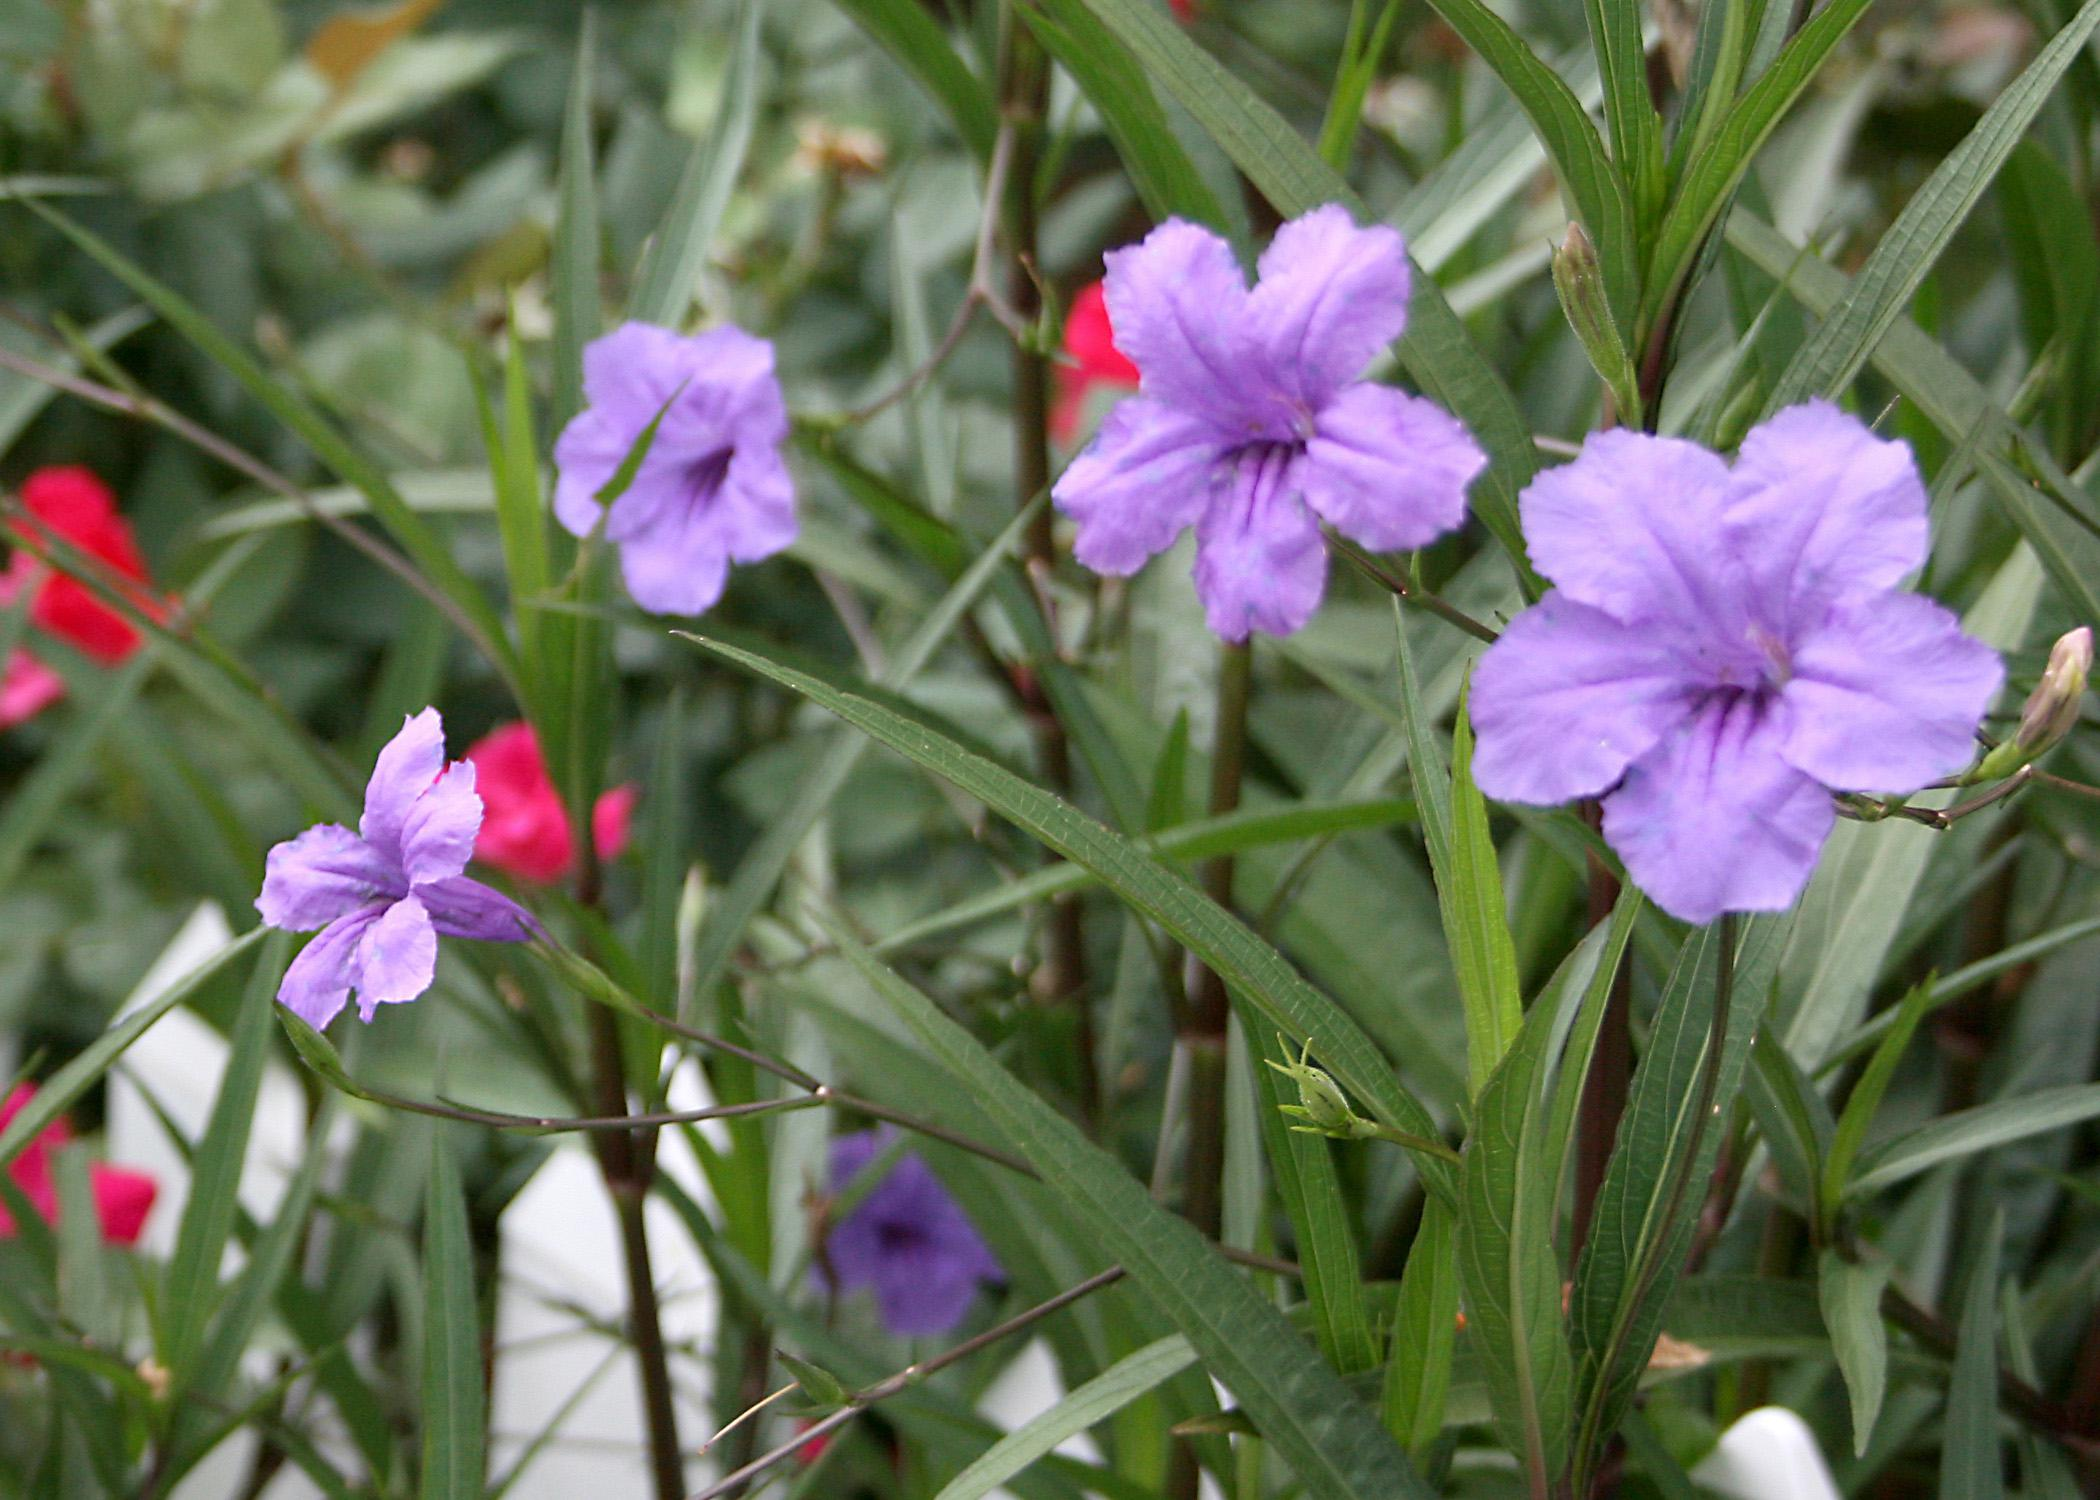 The bluish-purple, trumpet-shaped flowers of the Ruellia, or Mexican petunia, resemble azaleas when massed together. (Photo by MSU Extension Service/Gary Bachman)